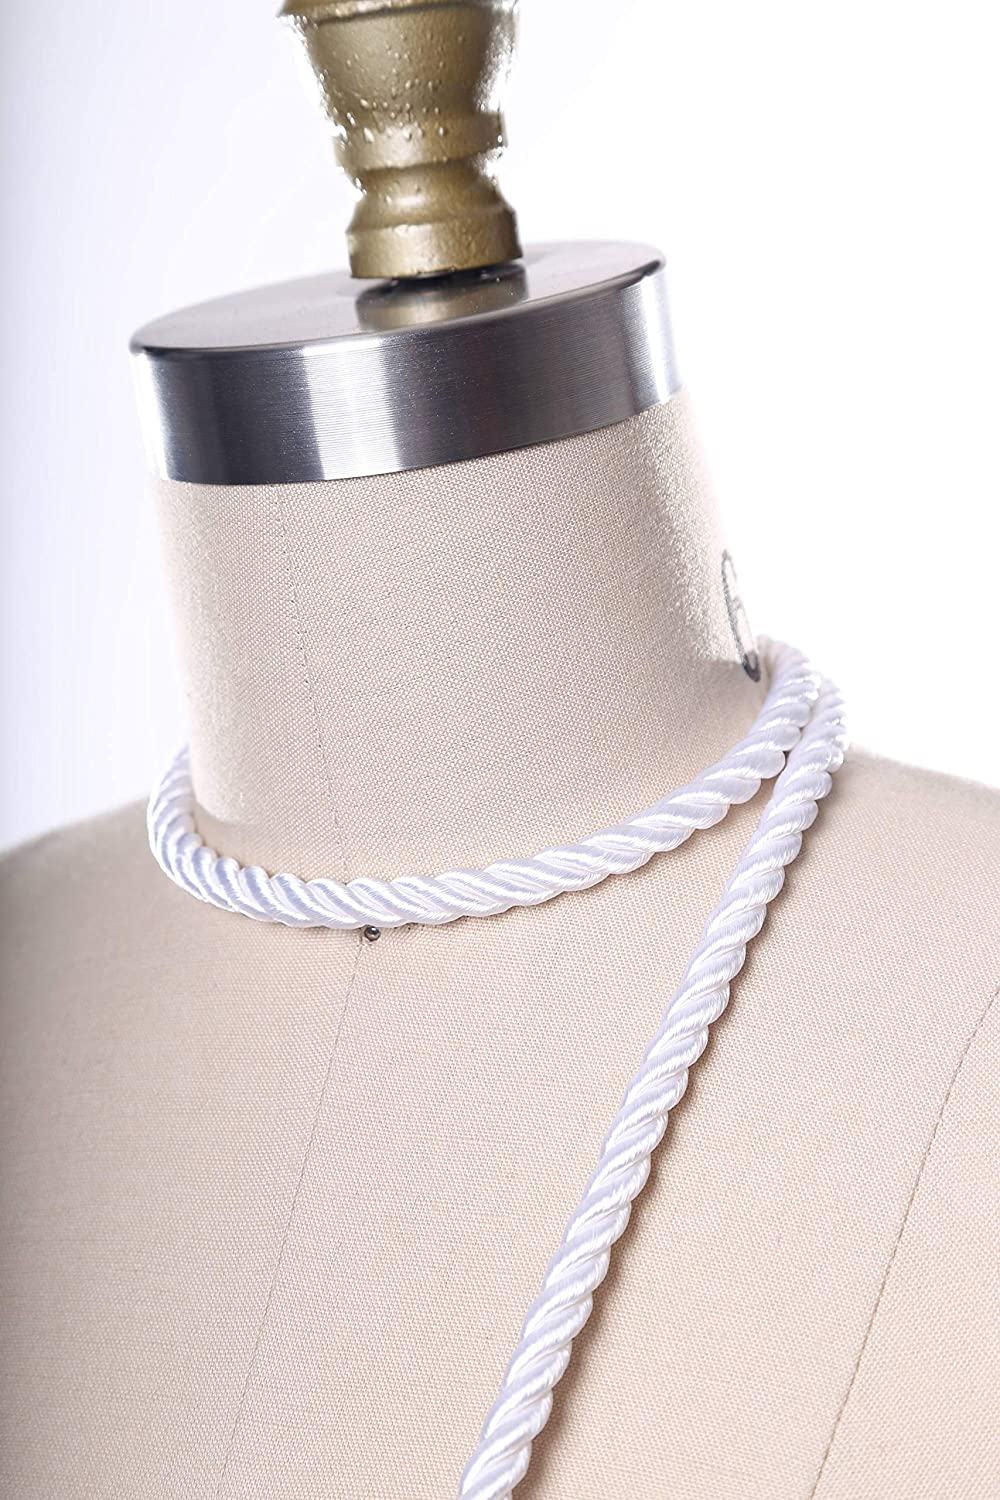 White Satin 2021 new Rope Trim. Tape Max 48% OFF Whi Silky